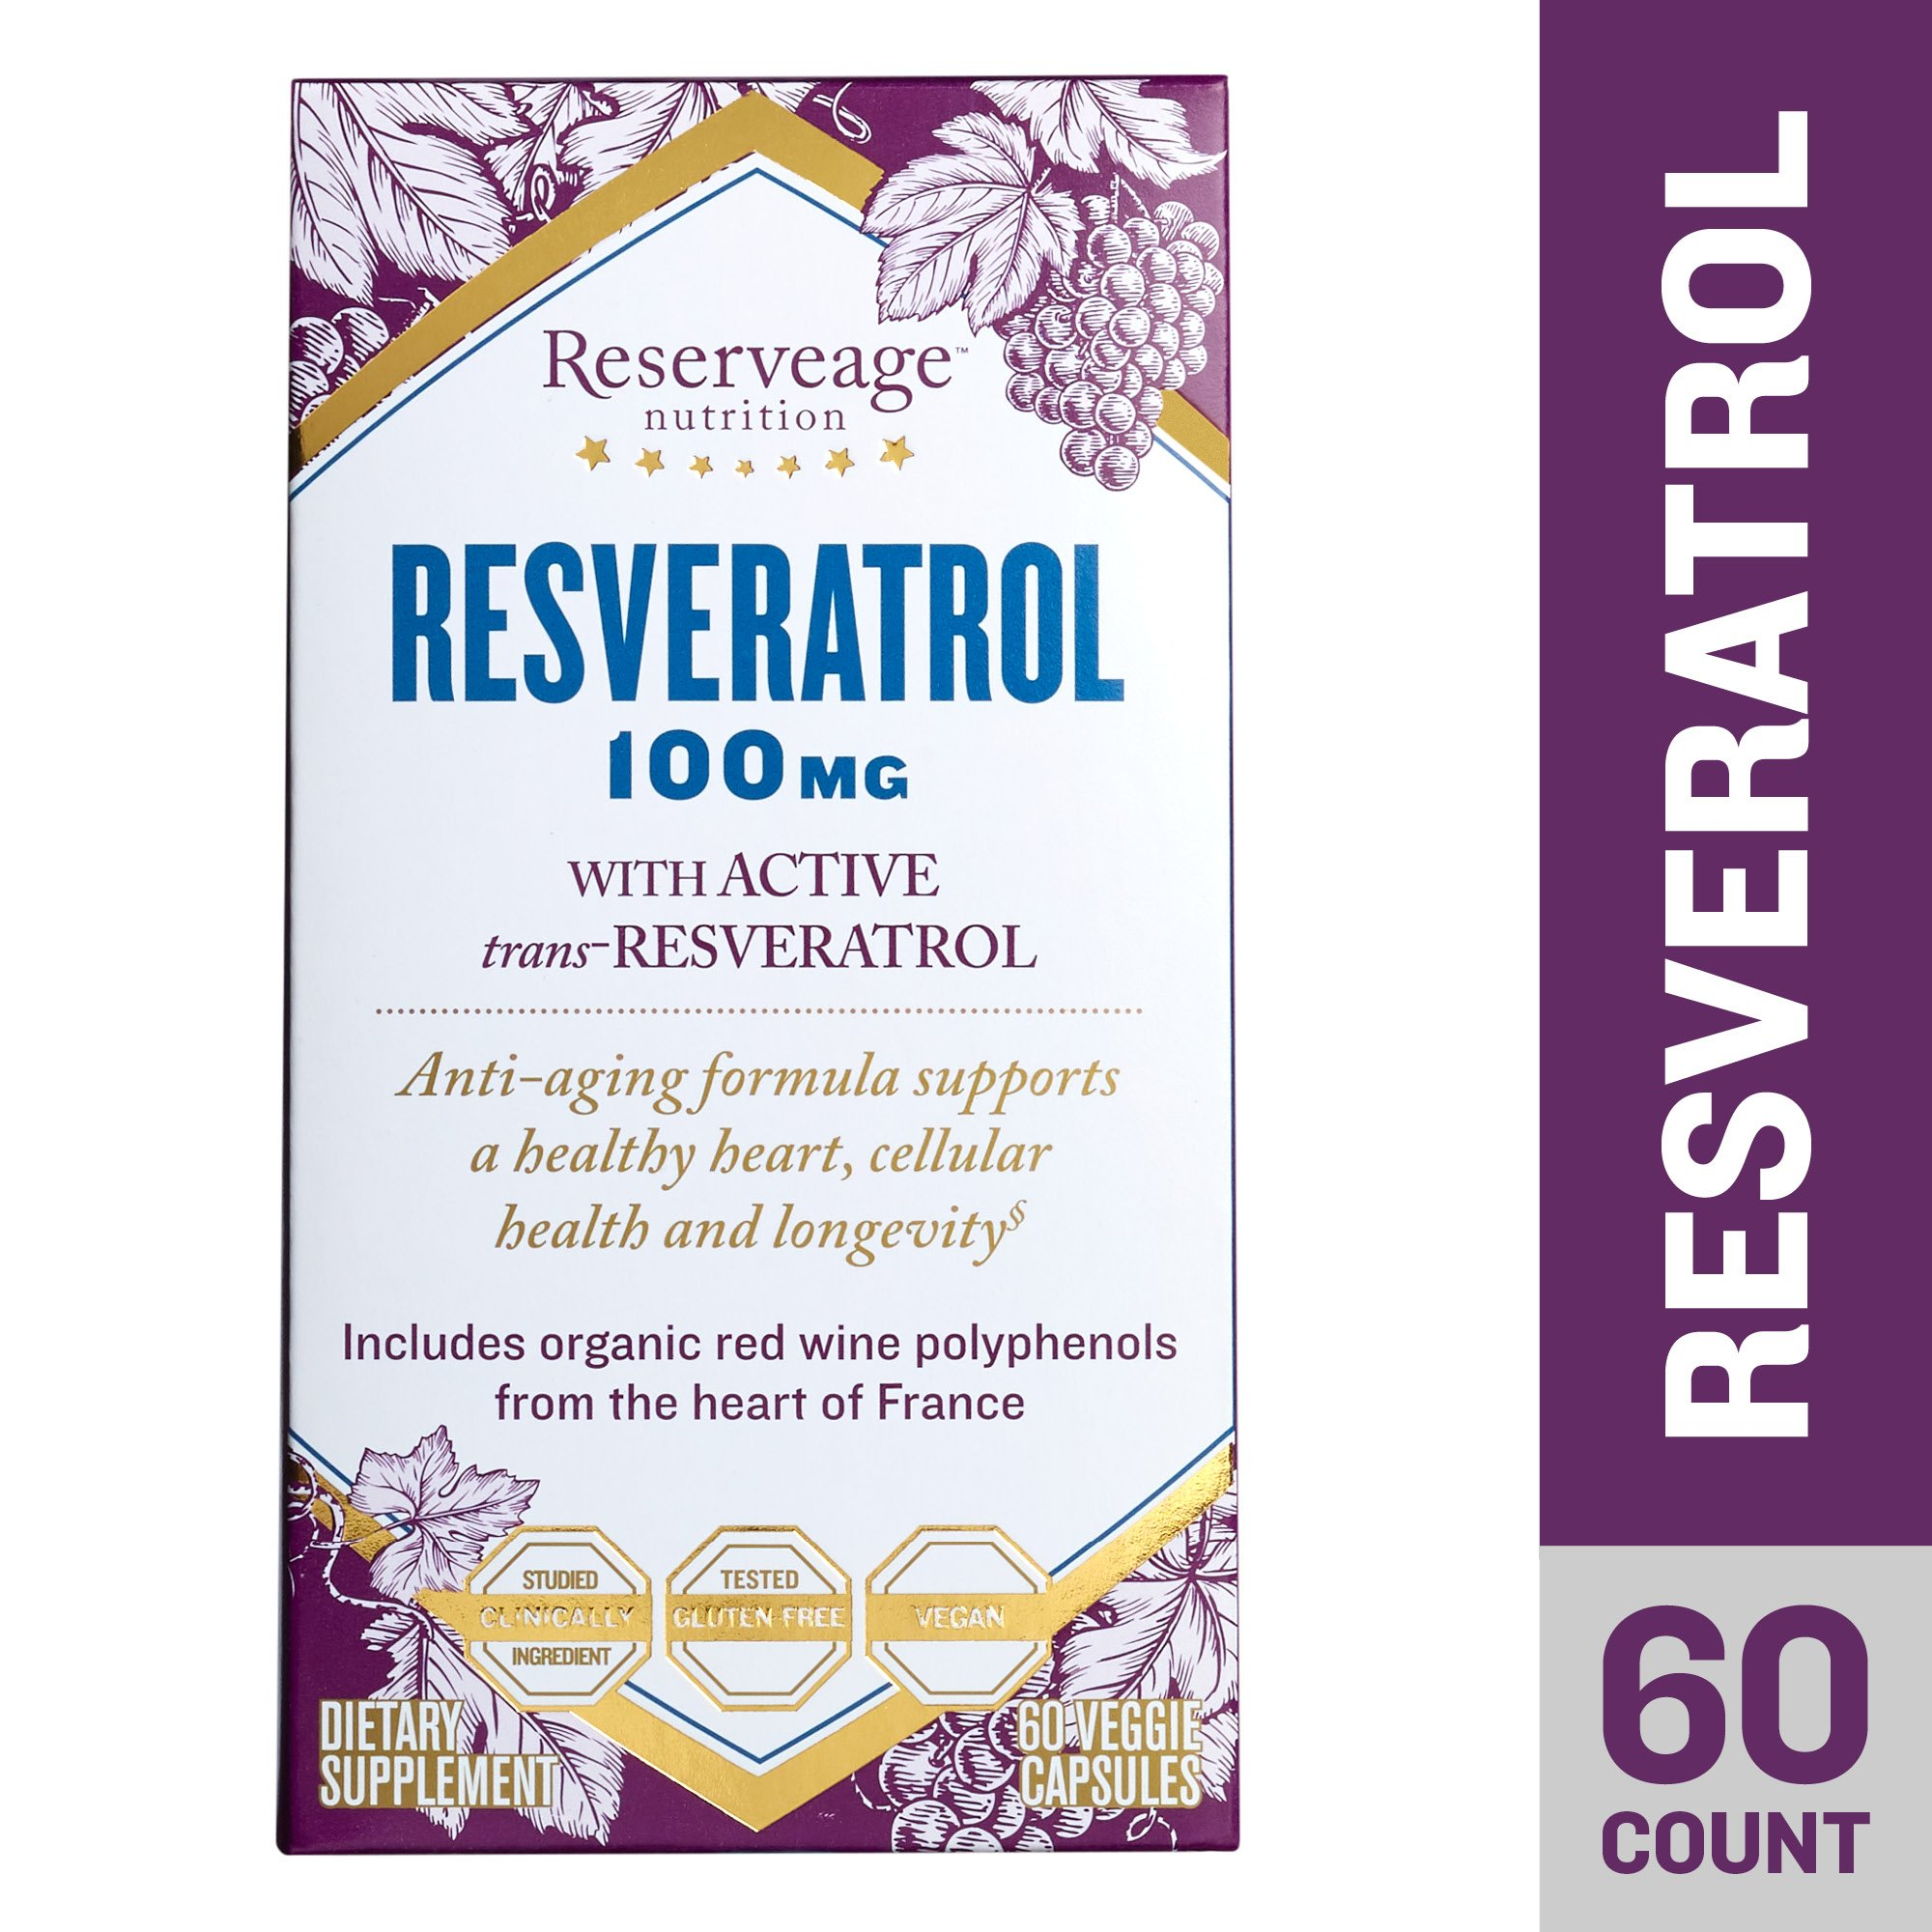 Reserveage - Resveratrol 100mg, Antioxidant Support for a Healthy Heart and Age Defying, Youthful Looking Skin with Organic Red Grapes and Quercetin, Gluten Free, Vegan, 60 Capsules